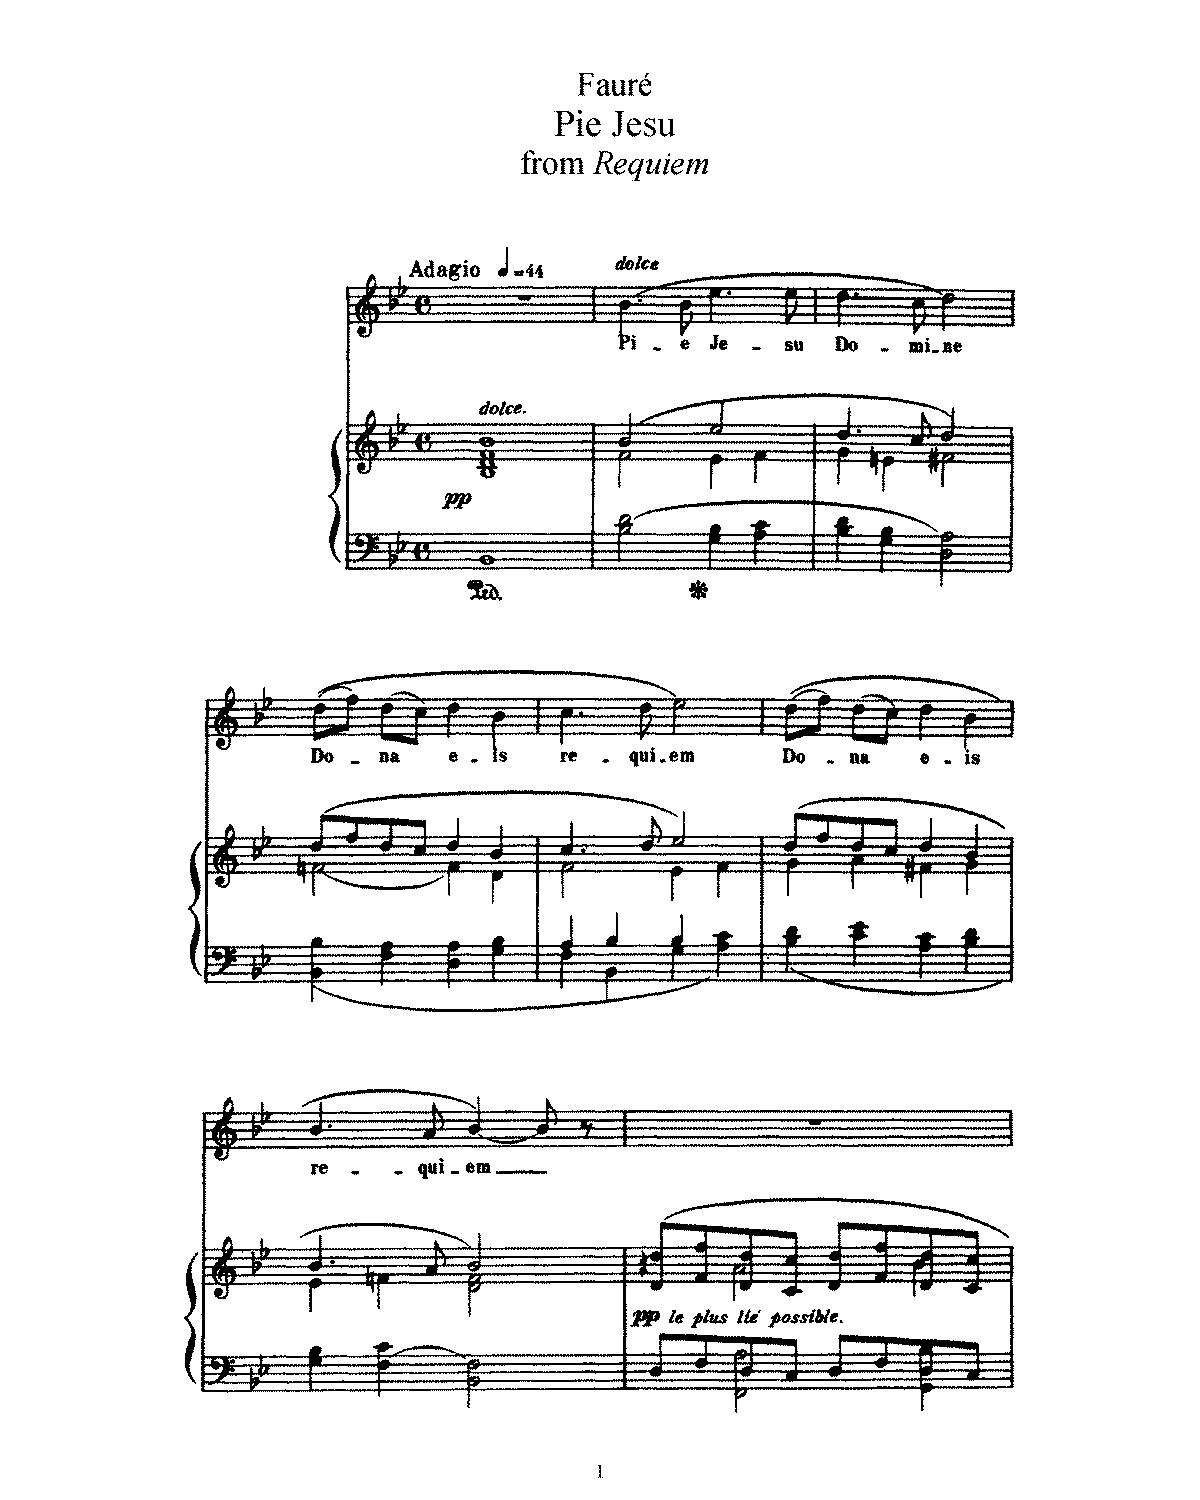 PMLP21398-Fauré - Requiem, Op. 48 (Pie Jesu - voice and piano).pdf